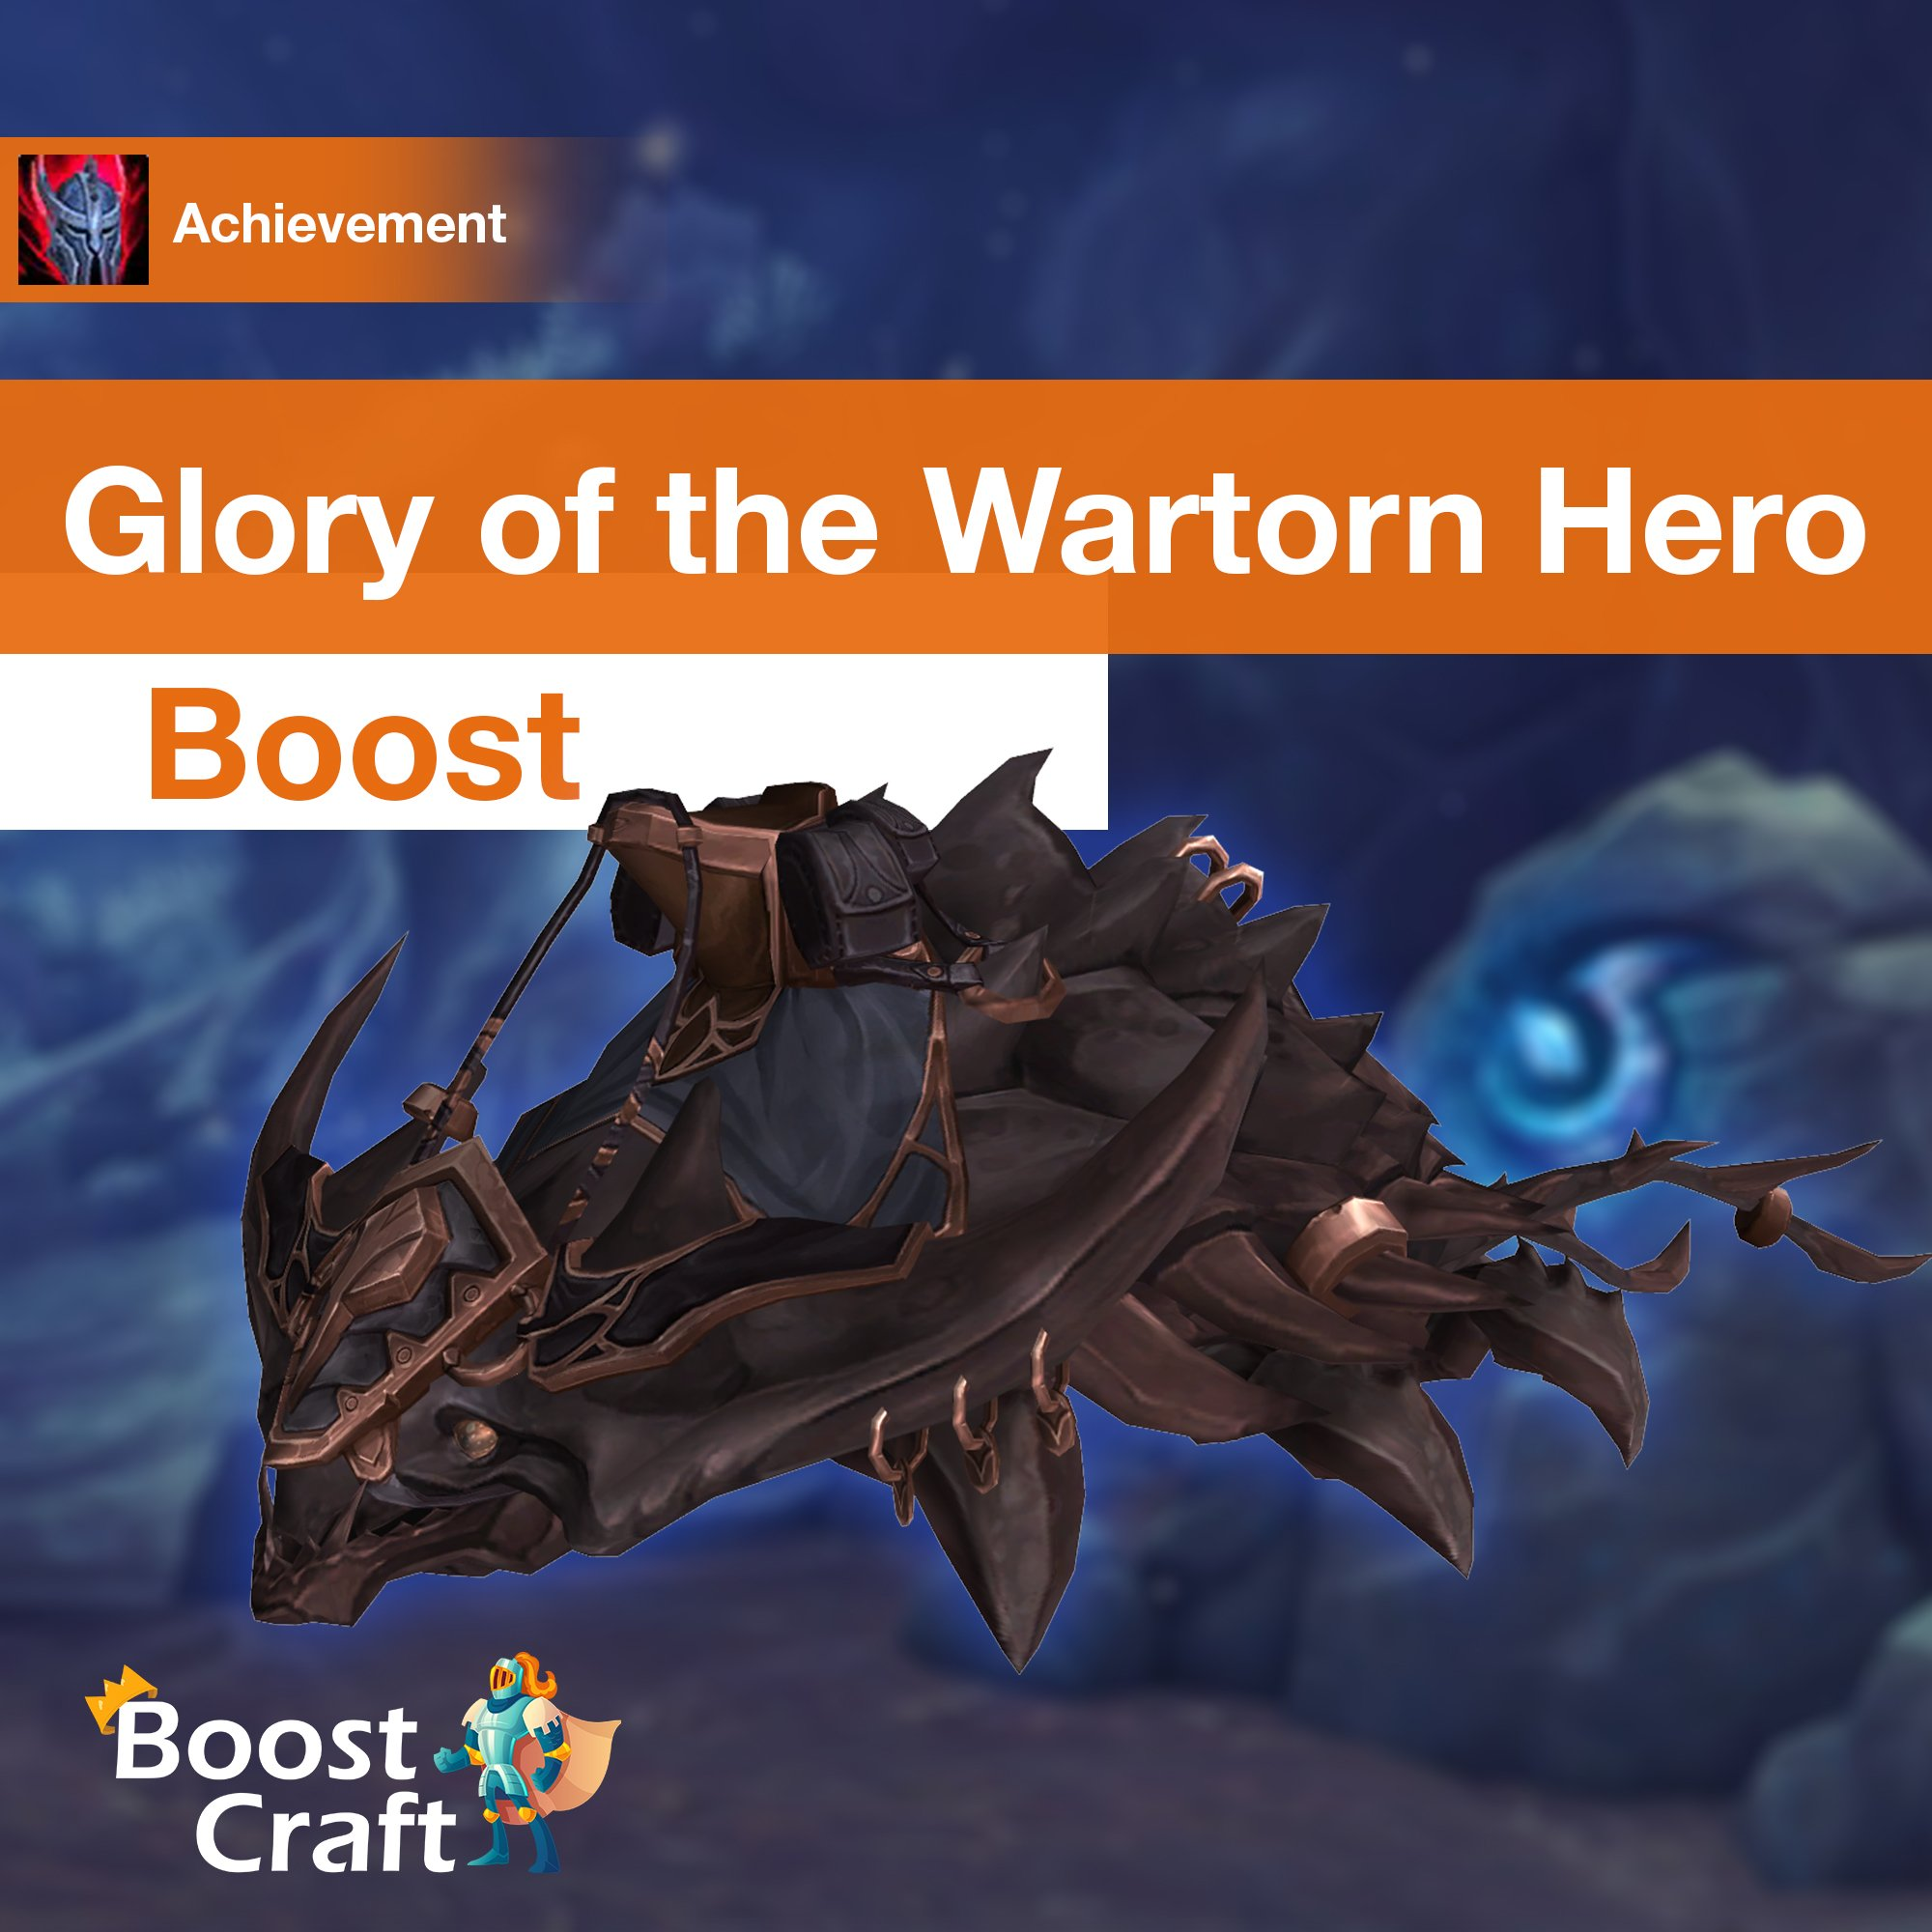 Glory of the Wartorn Hero – Boost